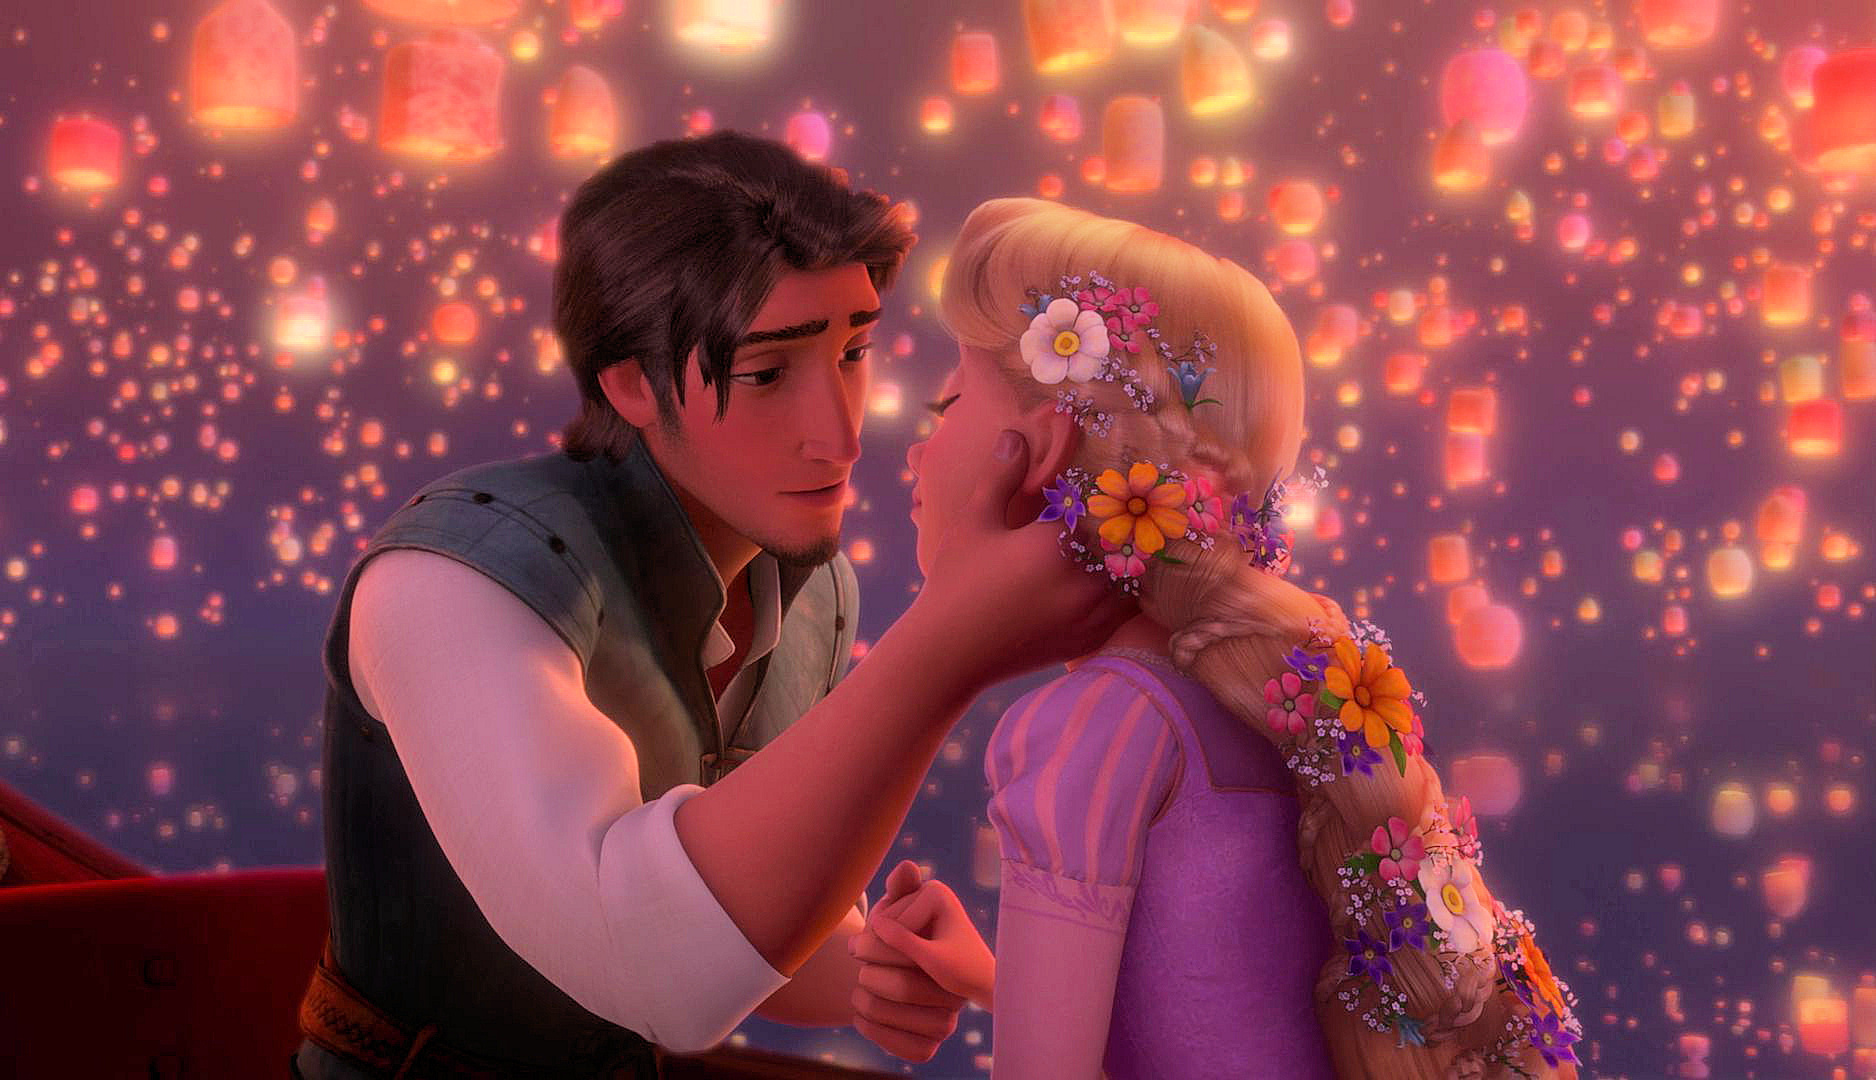 Fanfiction Eugene S Pov On His Day With Rapunzel On The Boat Rapunzel And Flynn Fanpop Page 2